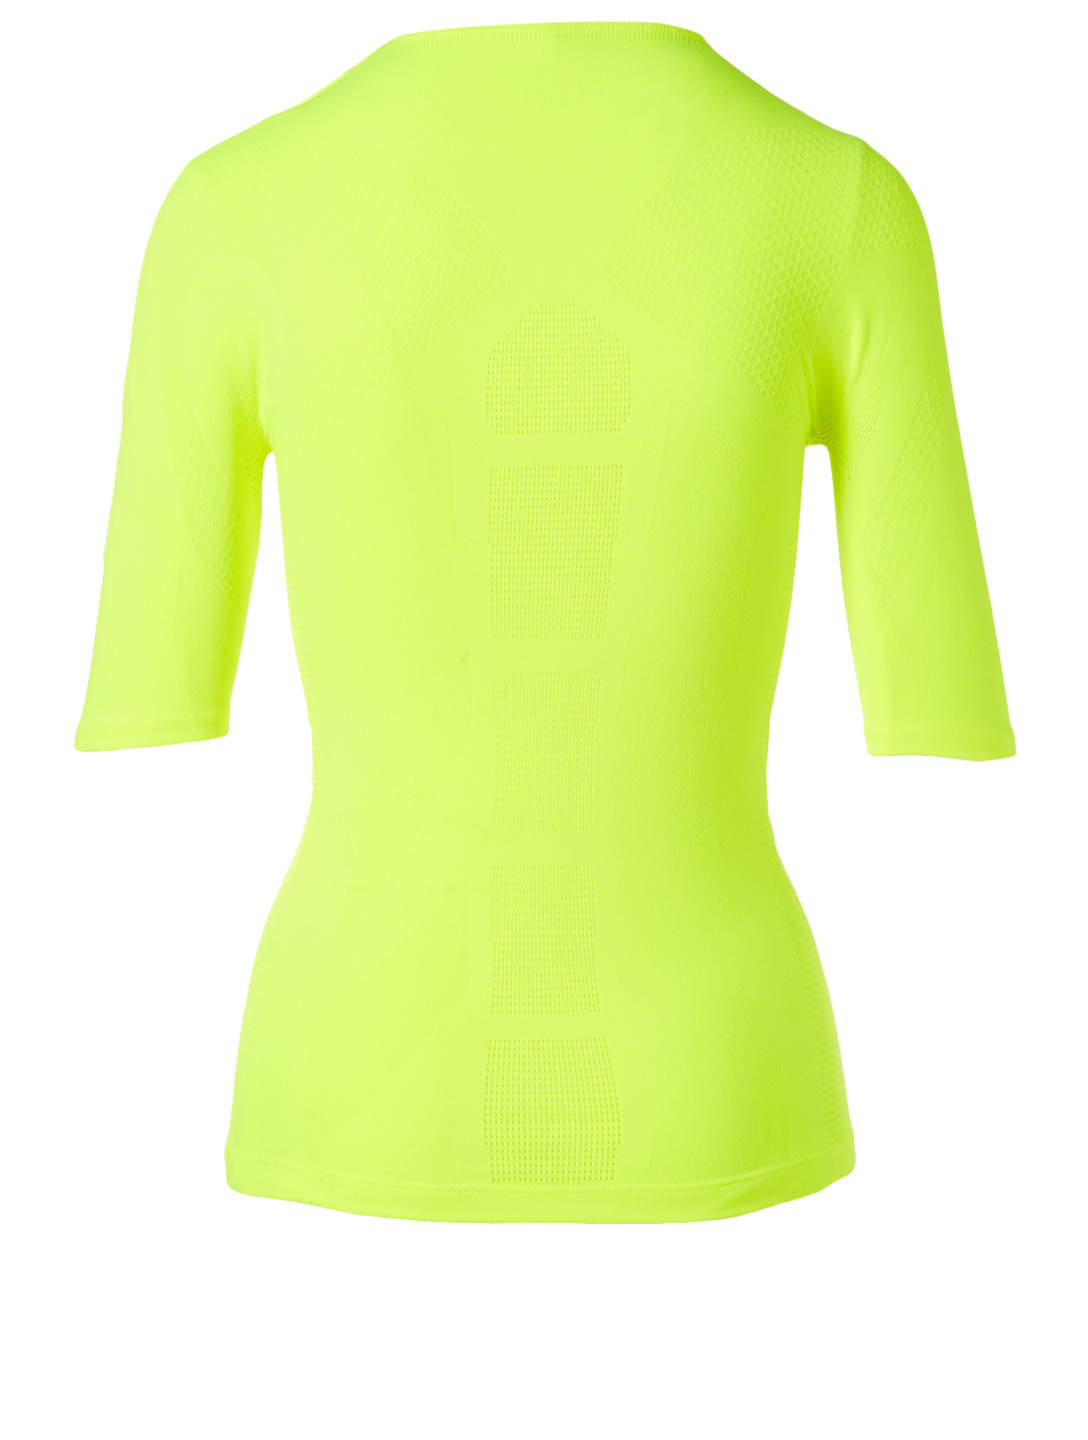 BALENCIAGA Athletic Logo T-Shirt Women's Yellow